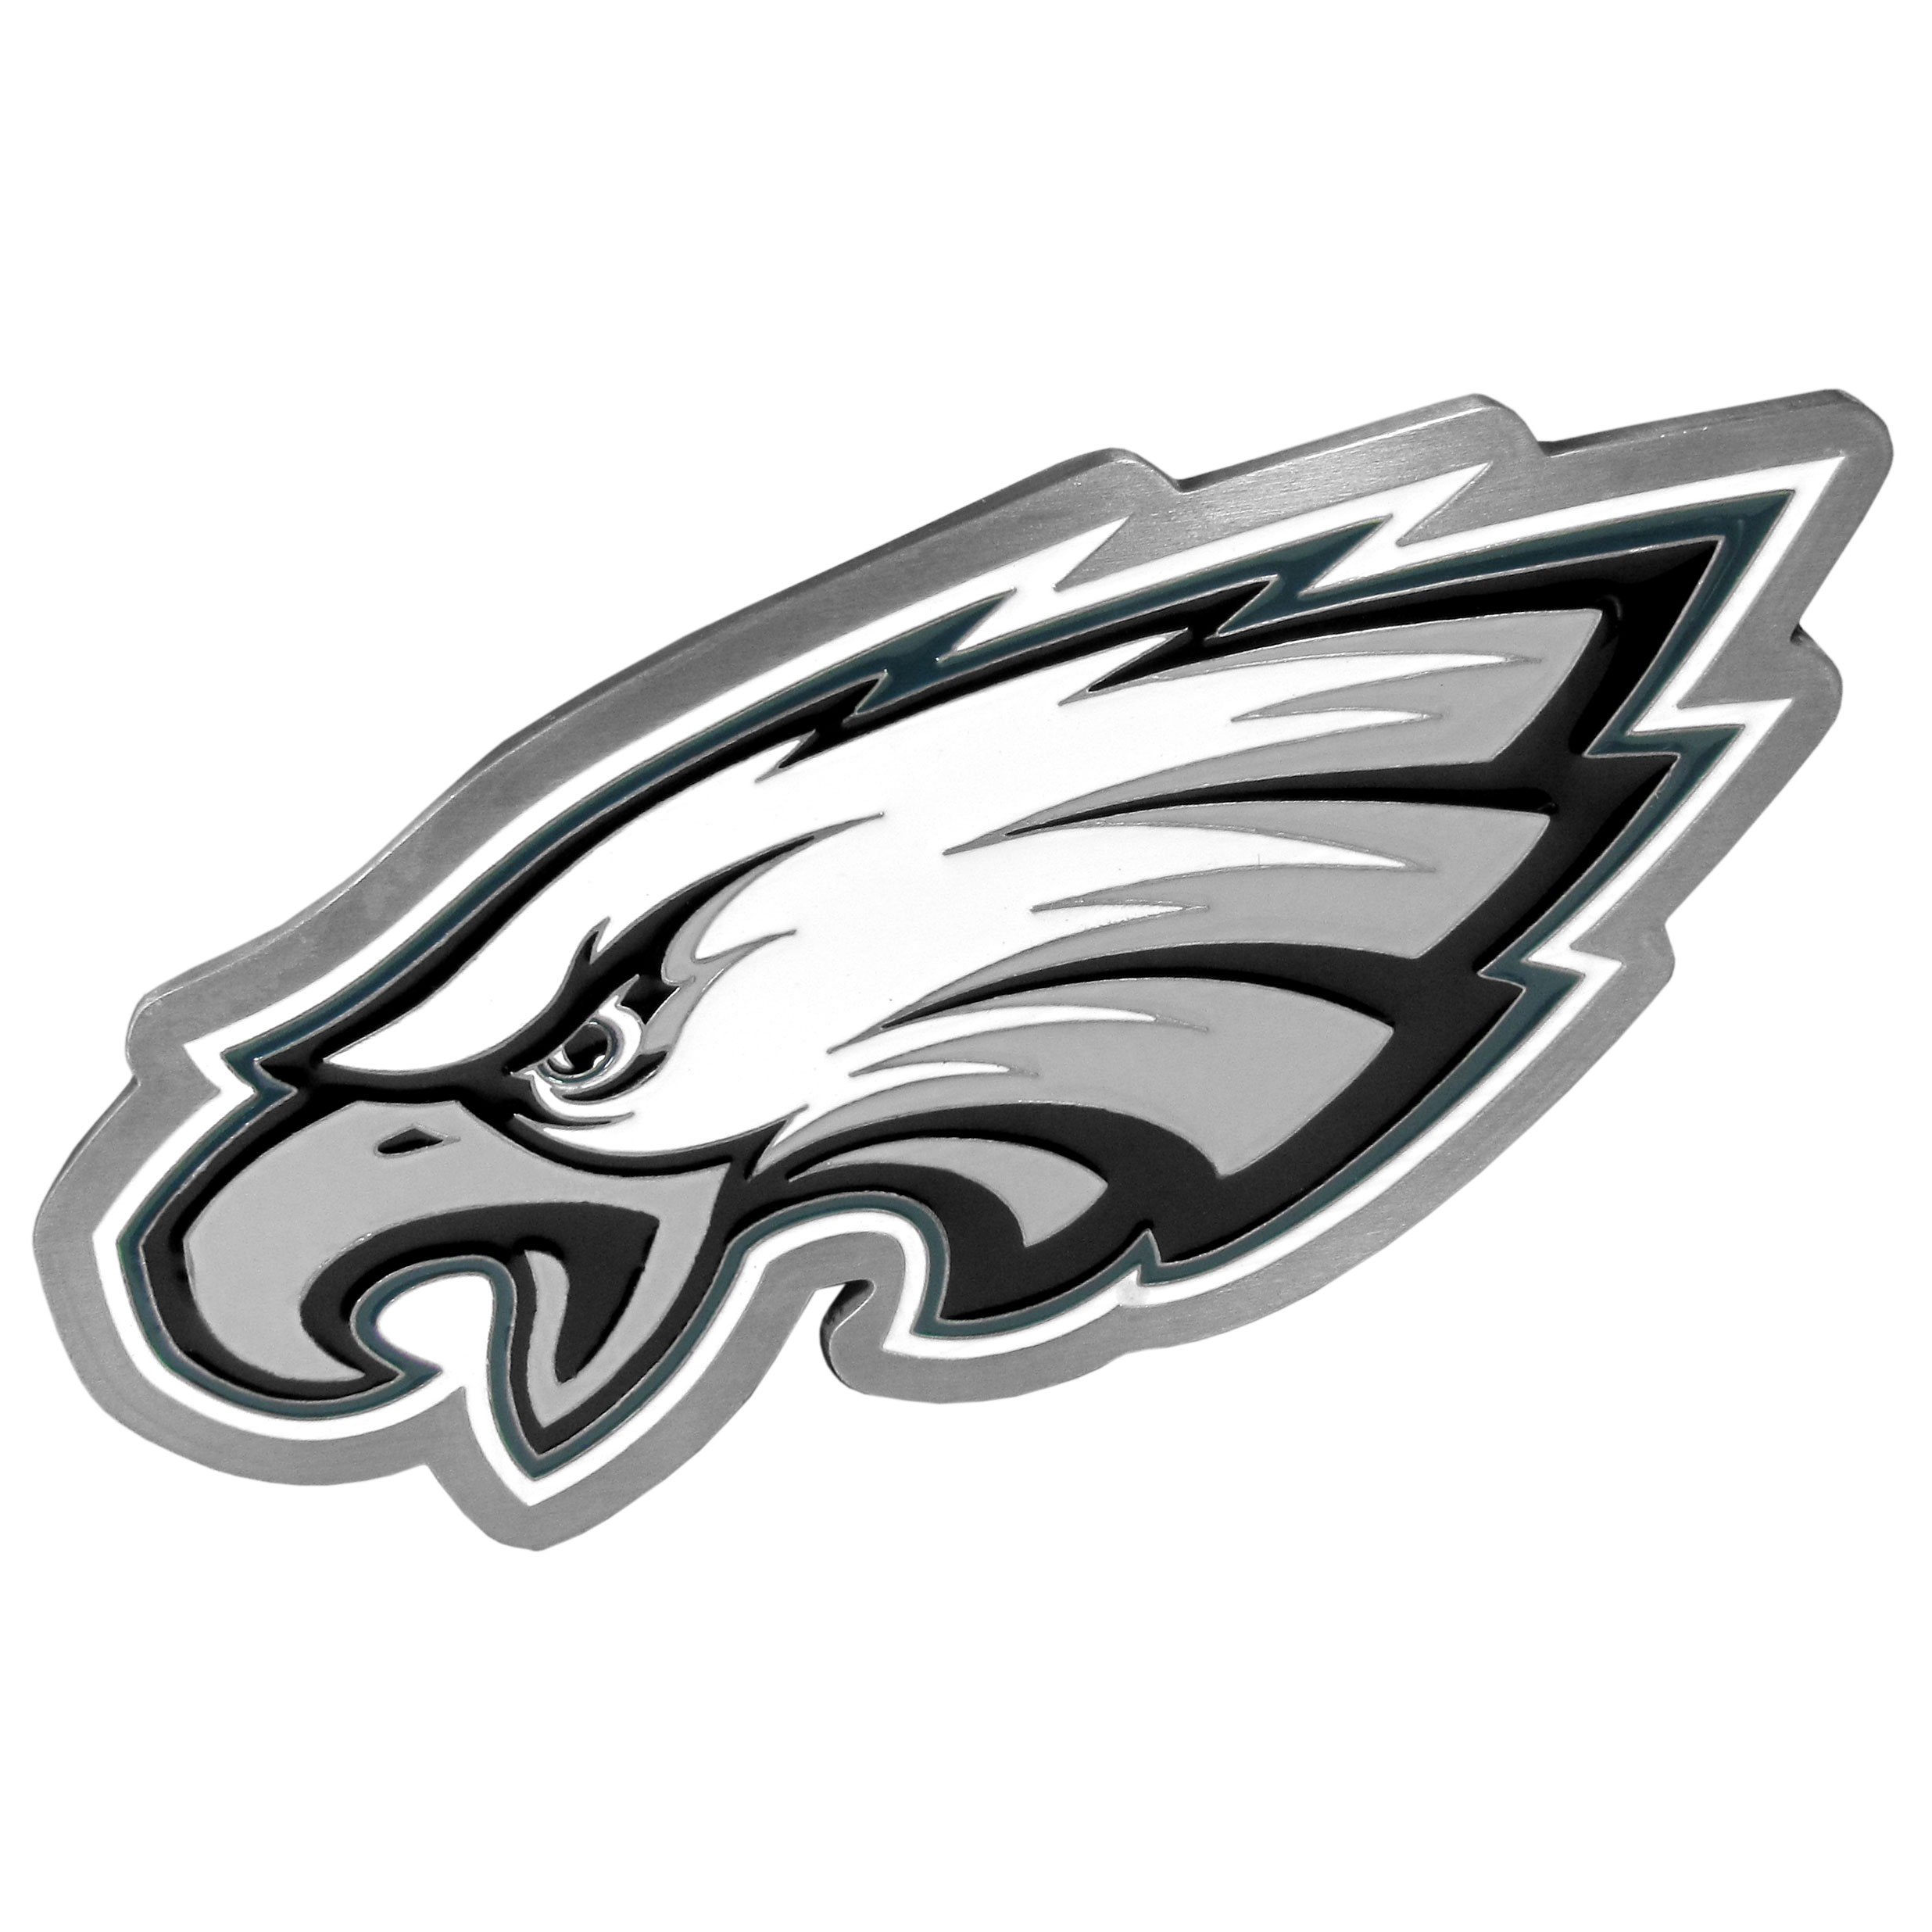 Philadelphia Eagles Large Hitch Cover Class II and Class III Metal Plugs - Whether you're driving in rival territory, or caravanning to the game, show your Philadelphia Eagles pride with our high-quality logo hitch covers. These are the highest quality hitch covers on the market. The plates are solid metal and are over 1/4 inch thick with deeply cast detail with an expertly enameled finish. The extra large hitch plate comes with a kit for Class II and Class III hitch receivers and includes: full metal plugs, screws and bracket.